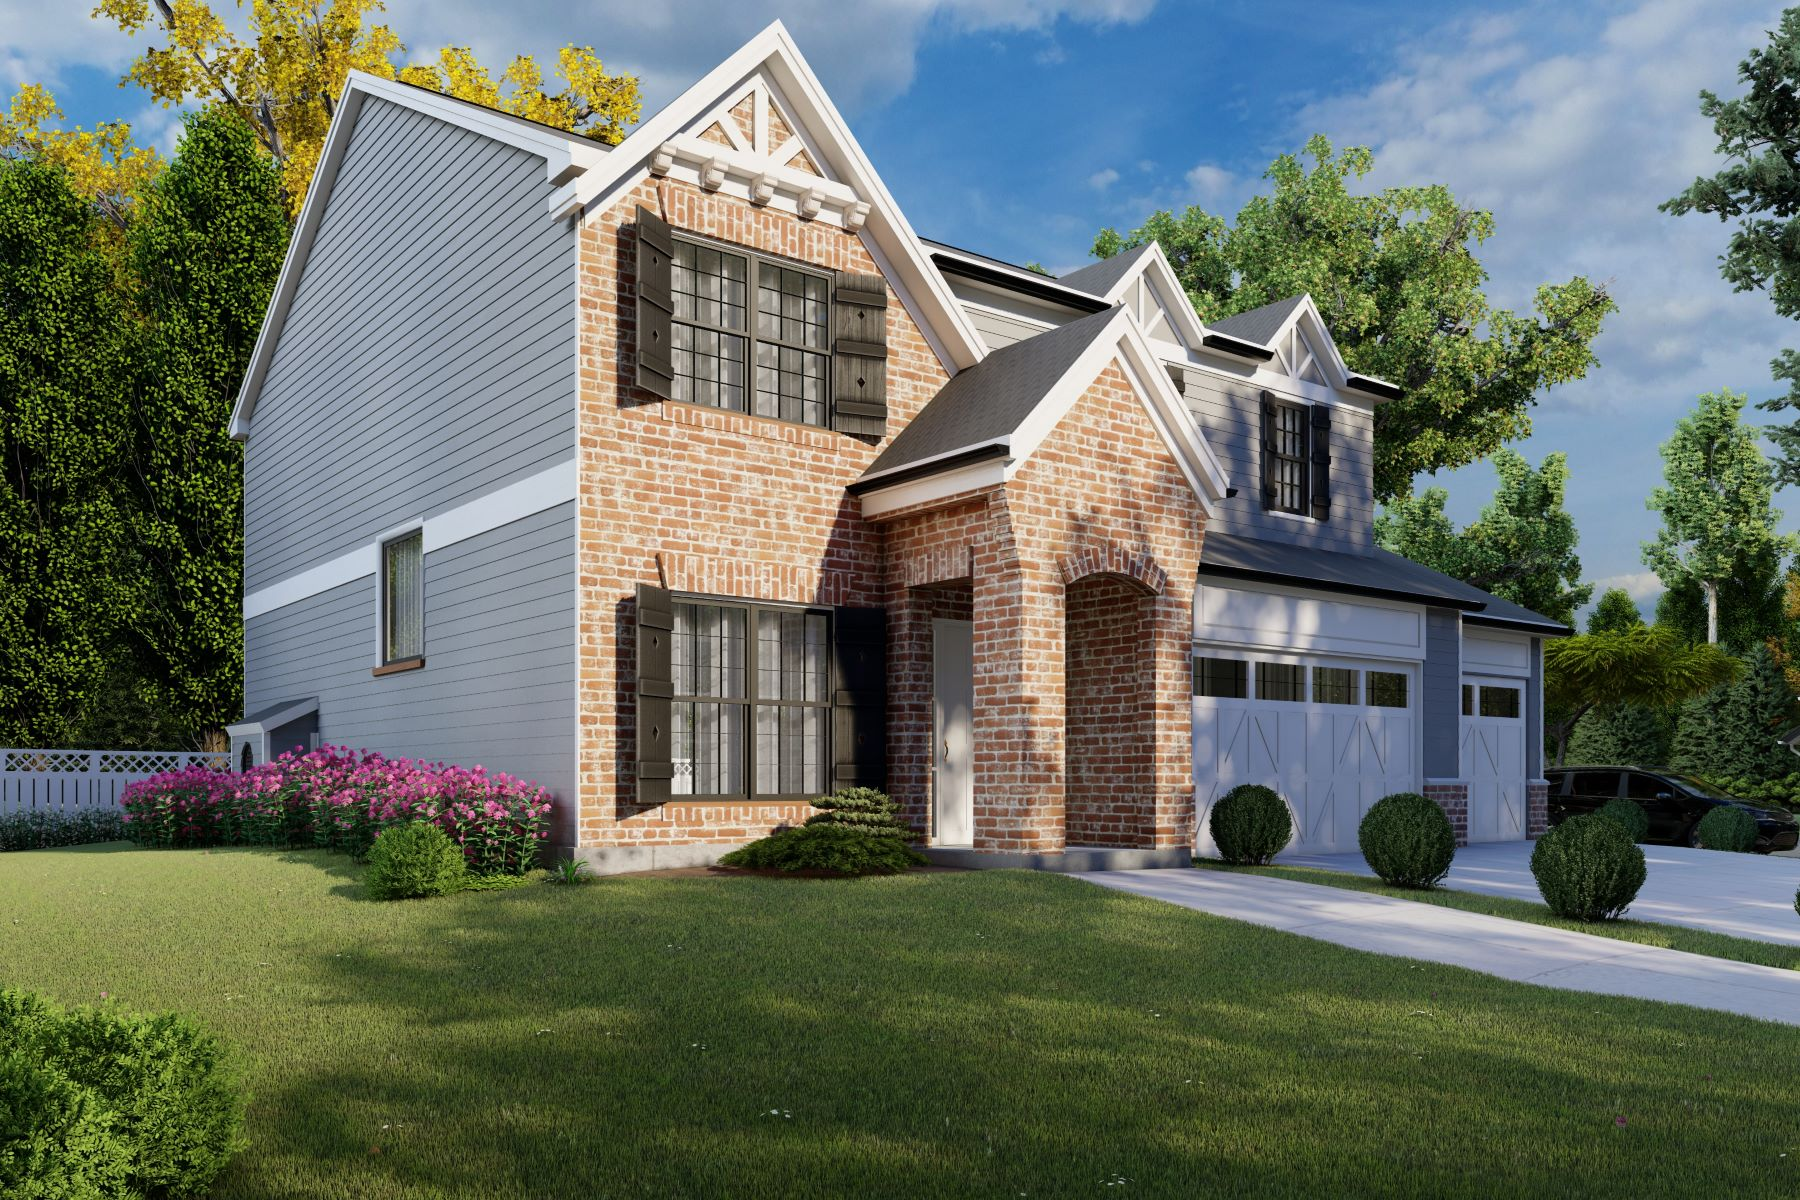 Additional photo for property listing at Great Opportunity To Build Your Dream Home 9328 Kenneth Place Olivette, Missouri 63132 United States